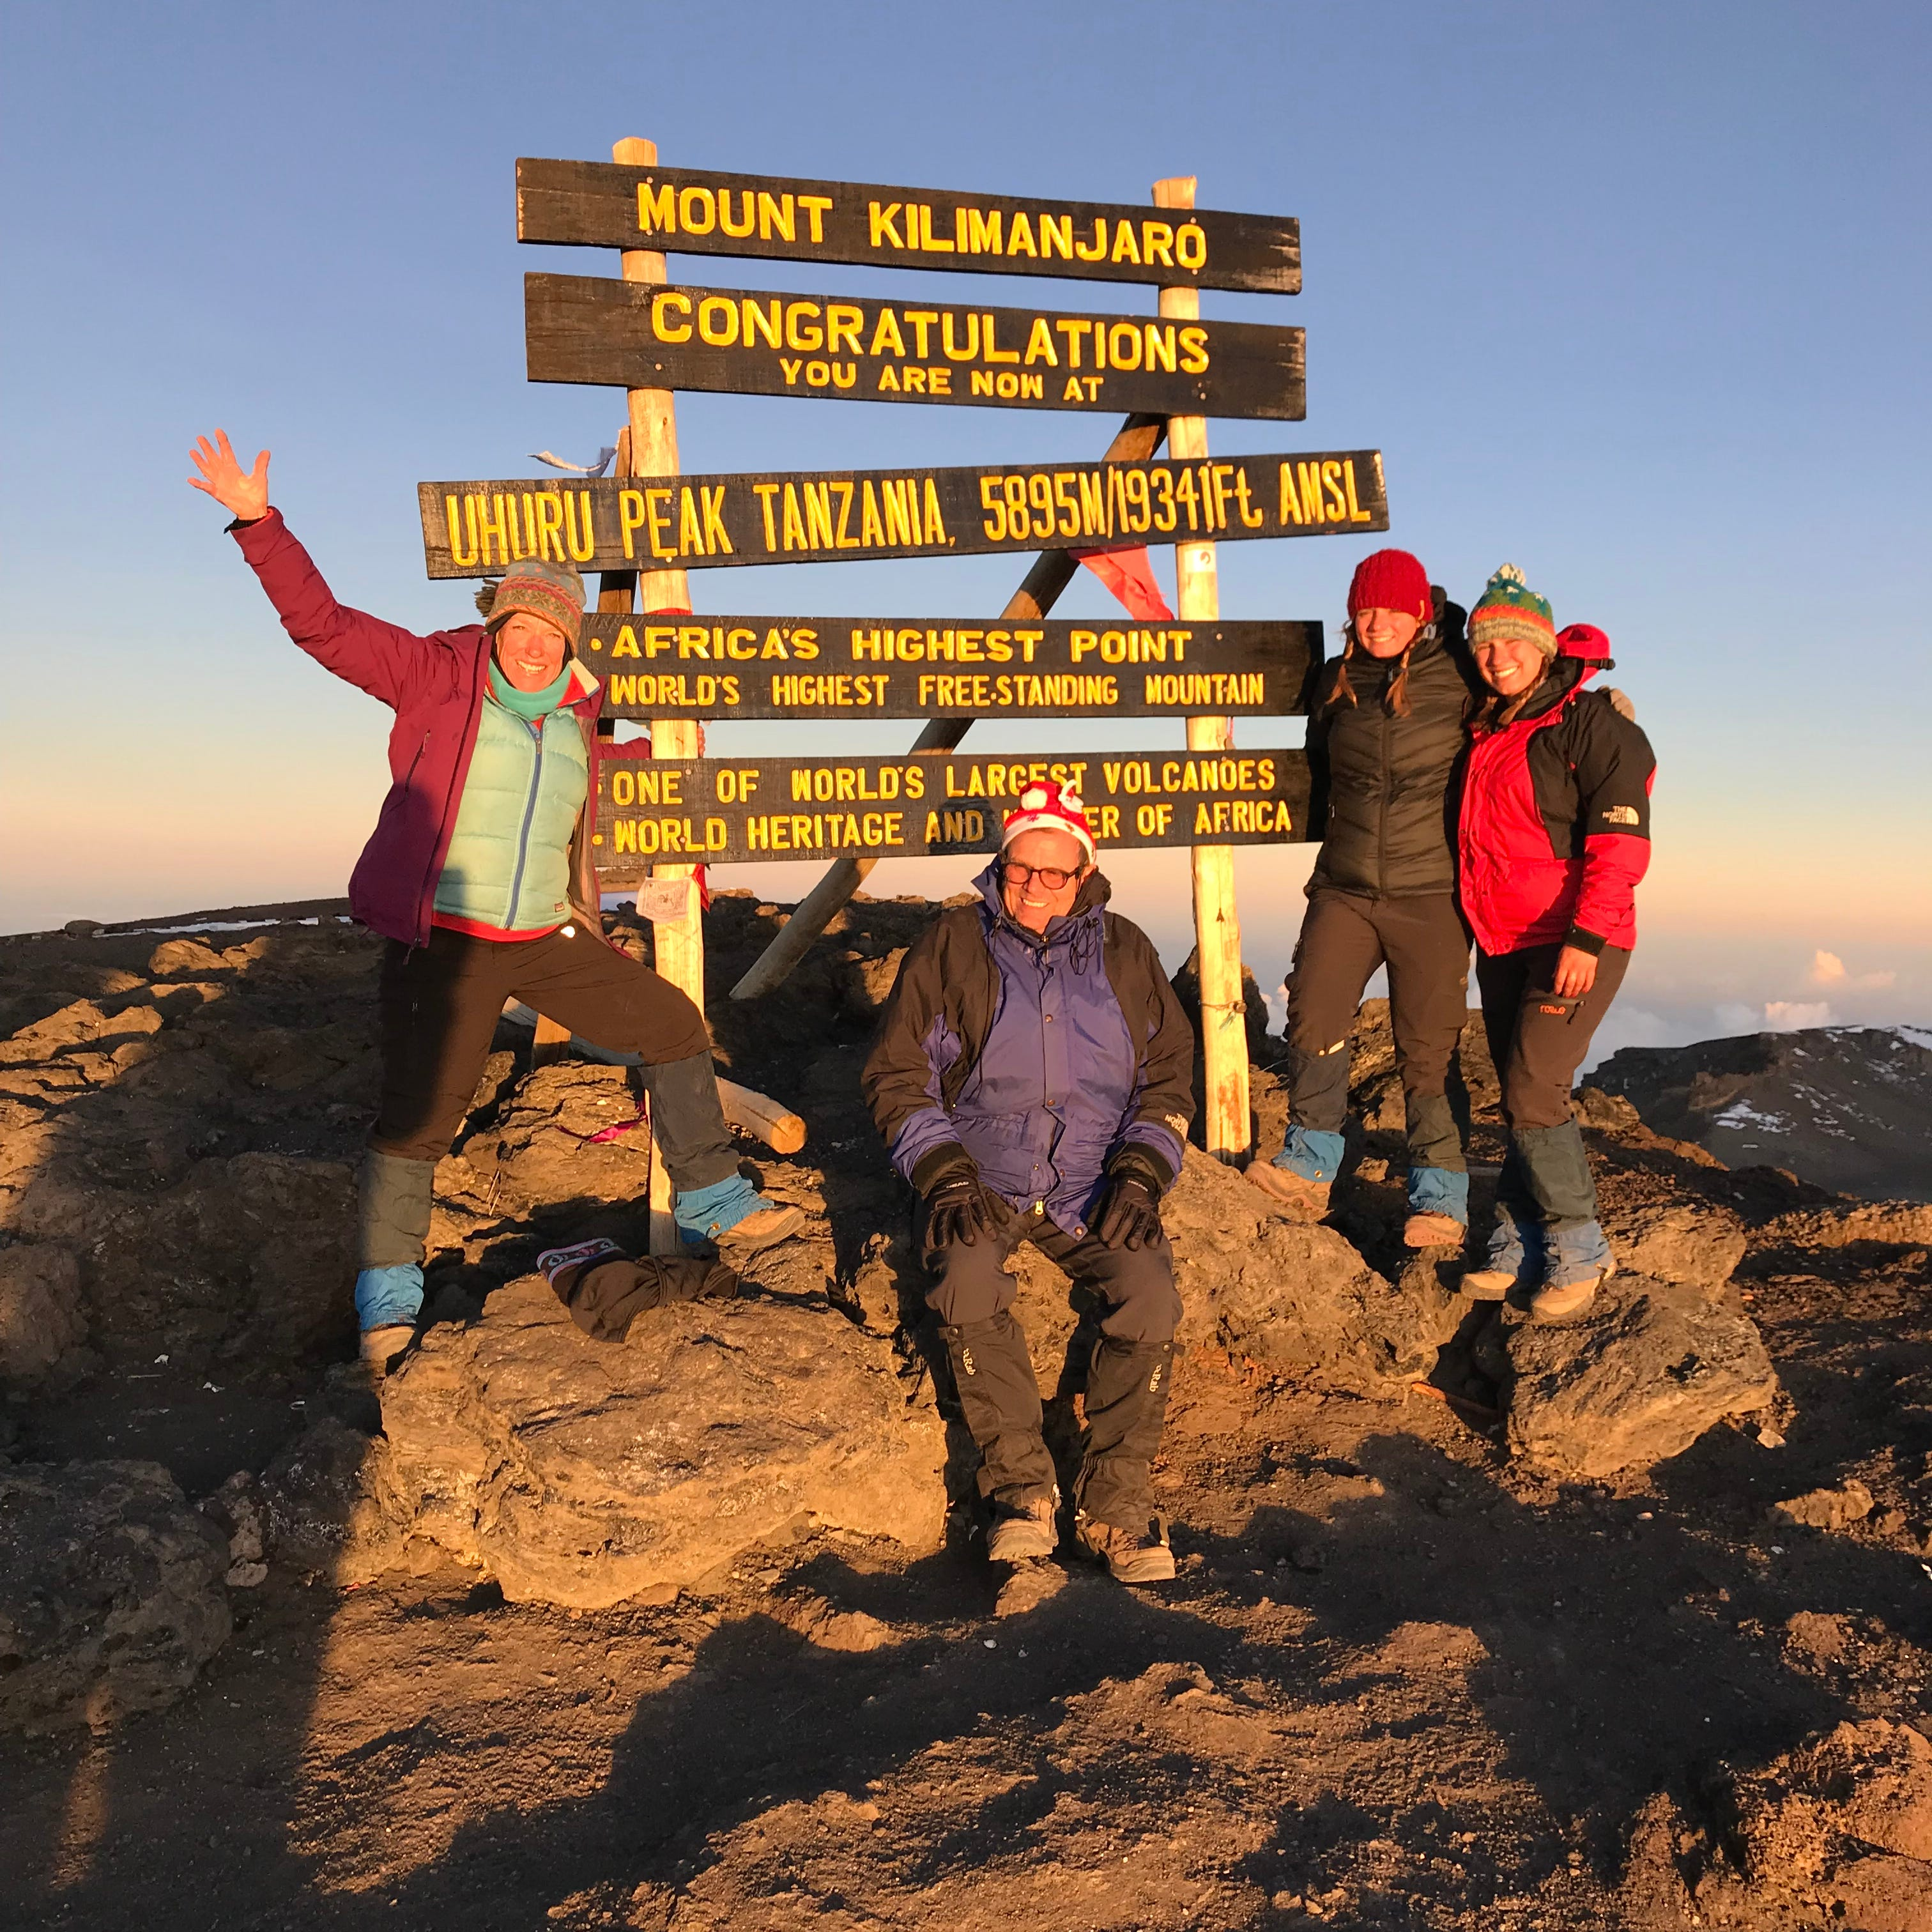 For my family of four, climbing Mount Kilimanjaro was true test of faith